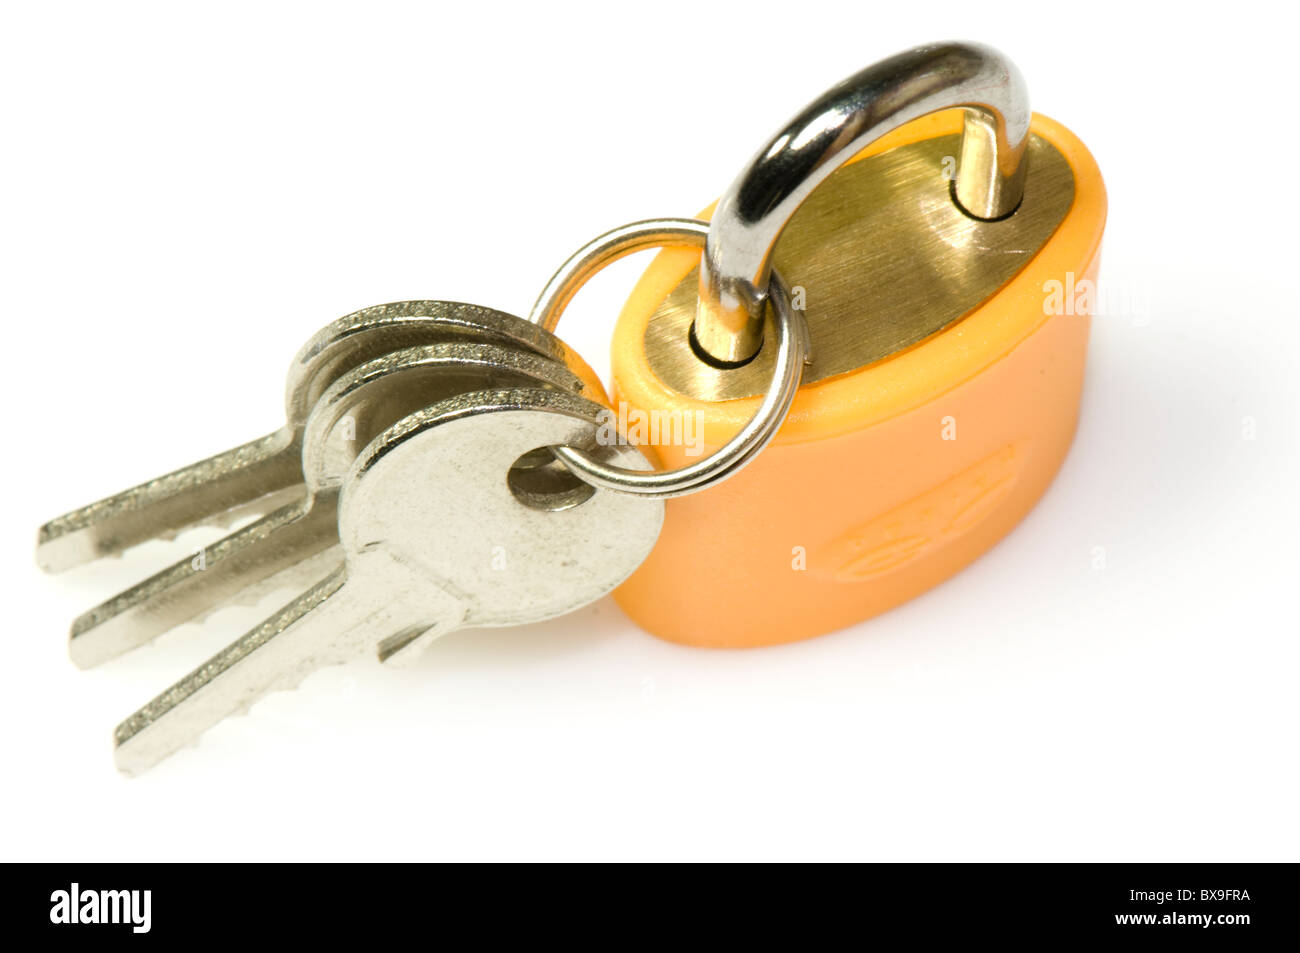 personal lock and keys on white background - Stock Image